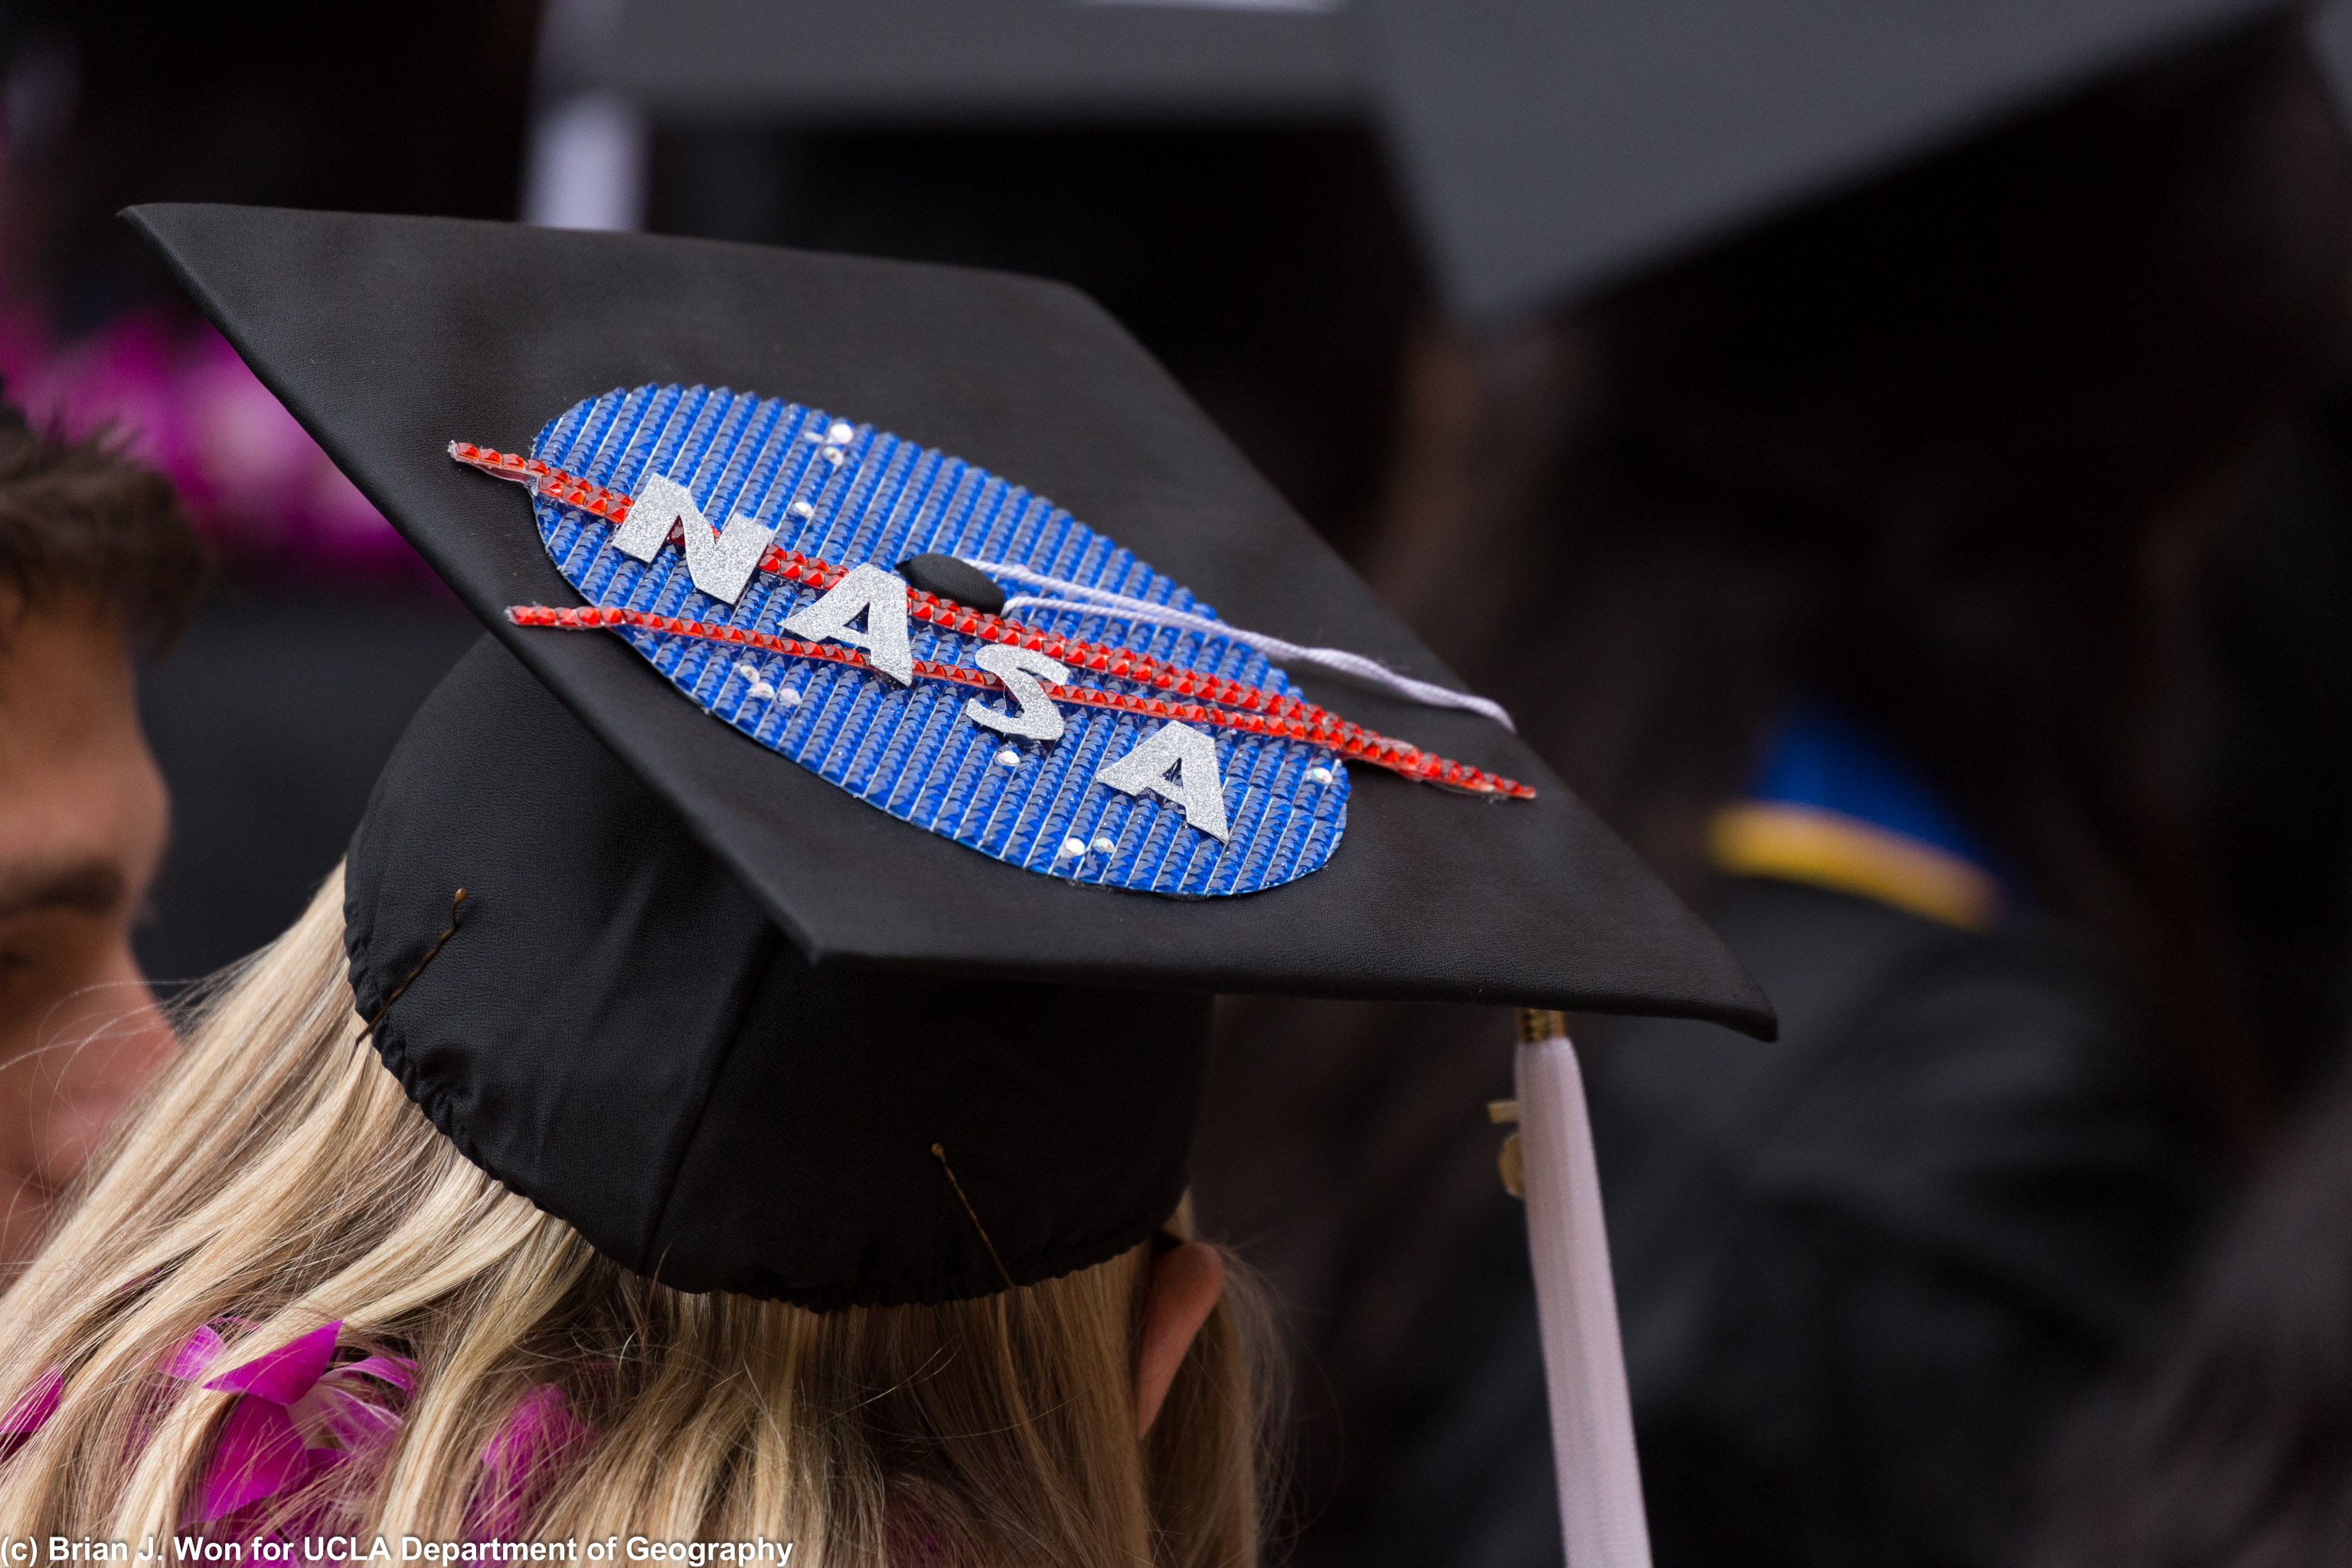 Different angle of the NASA cap